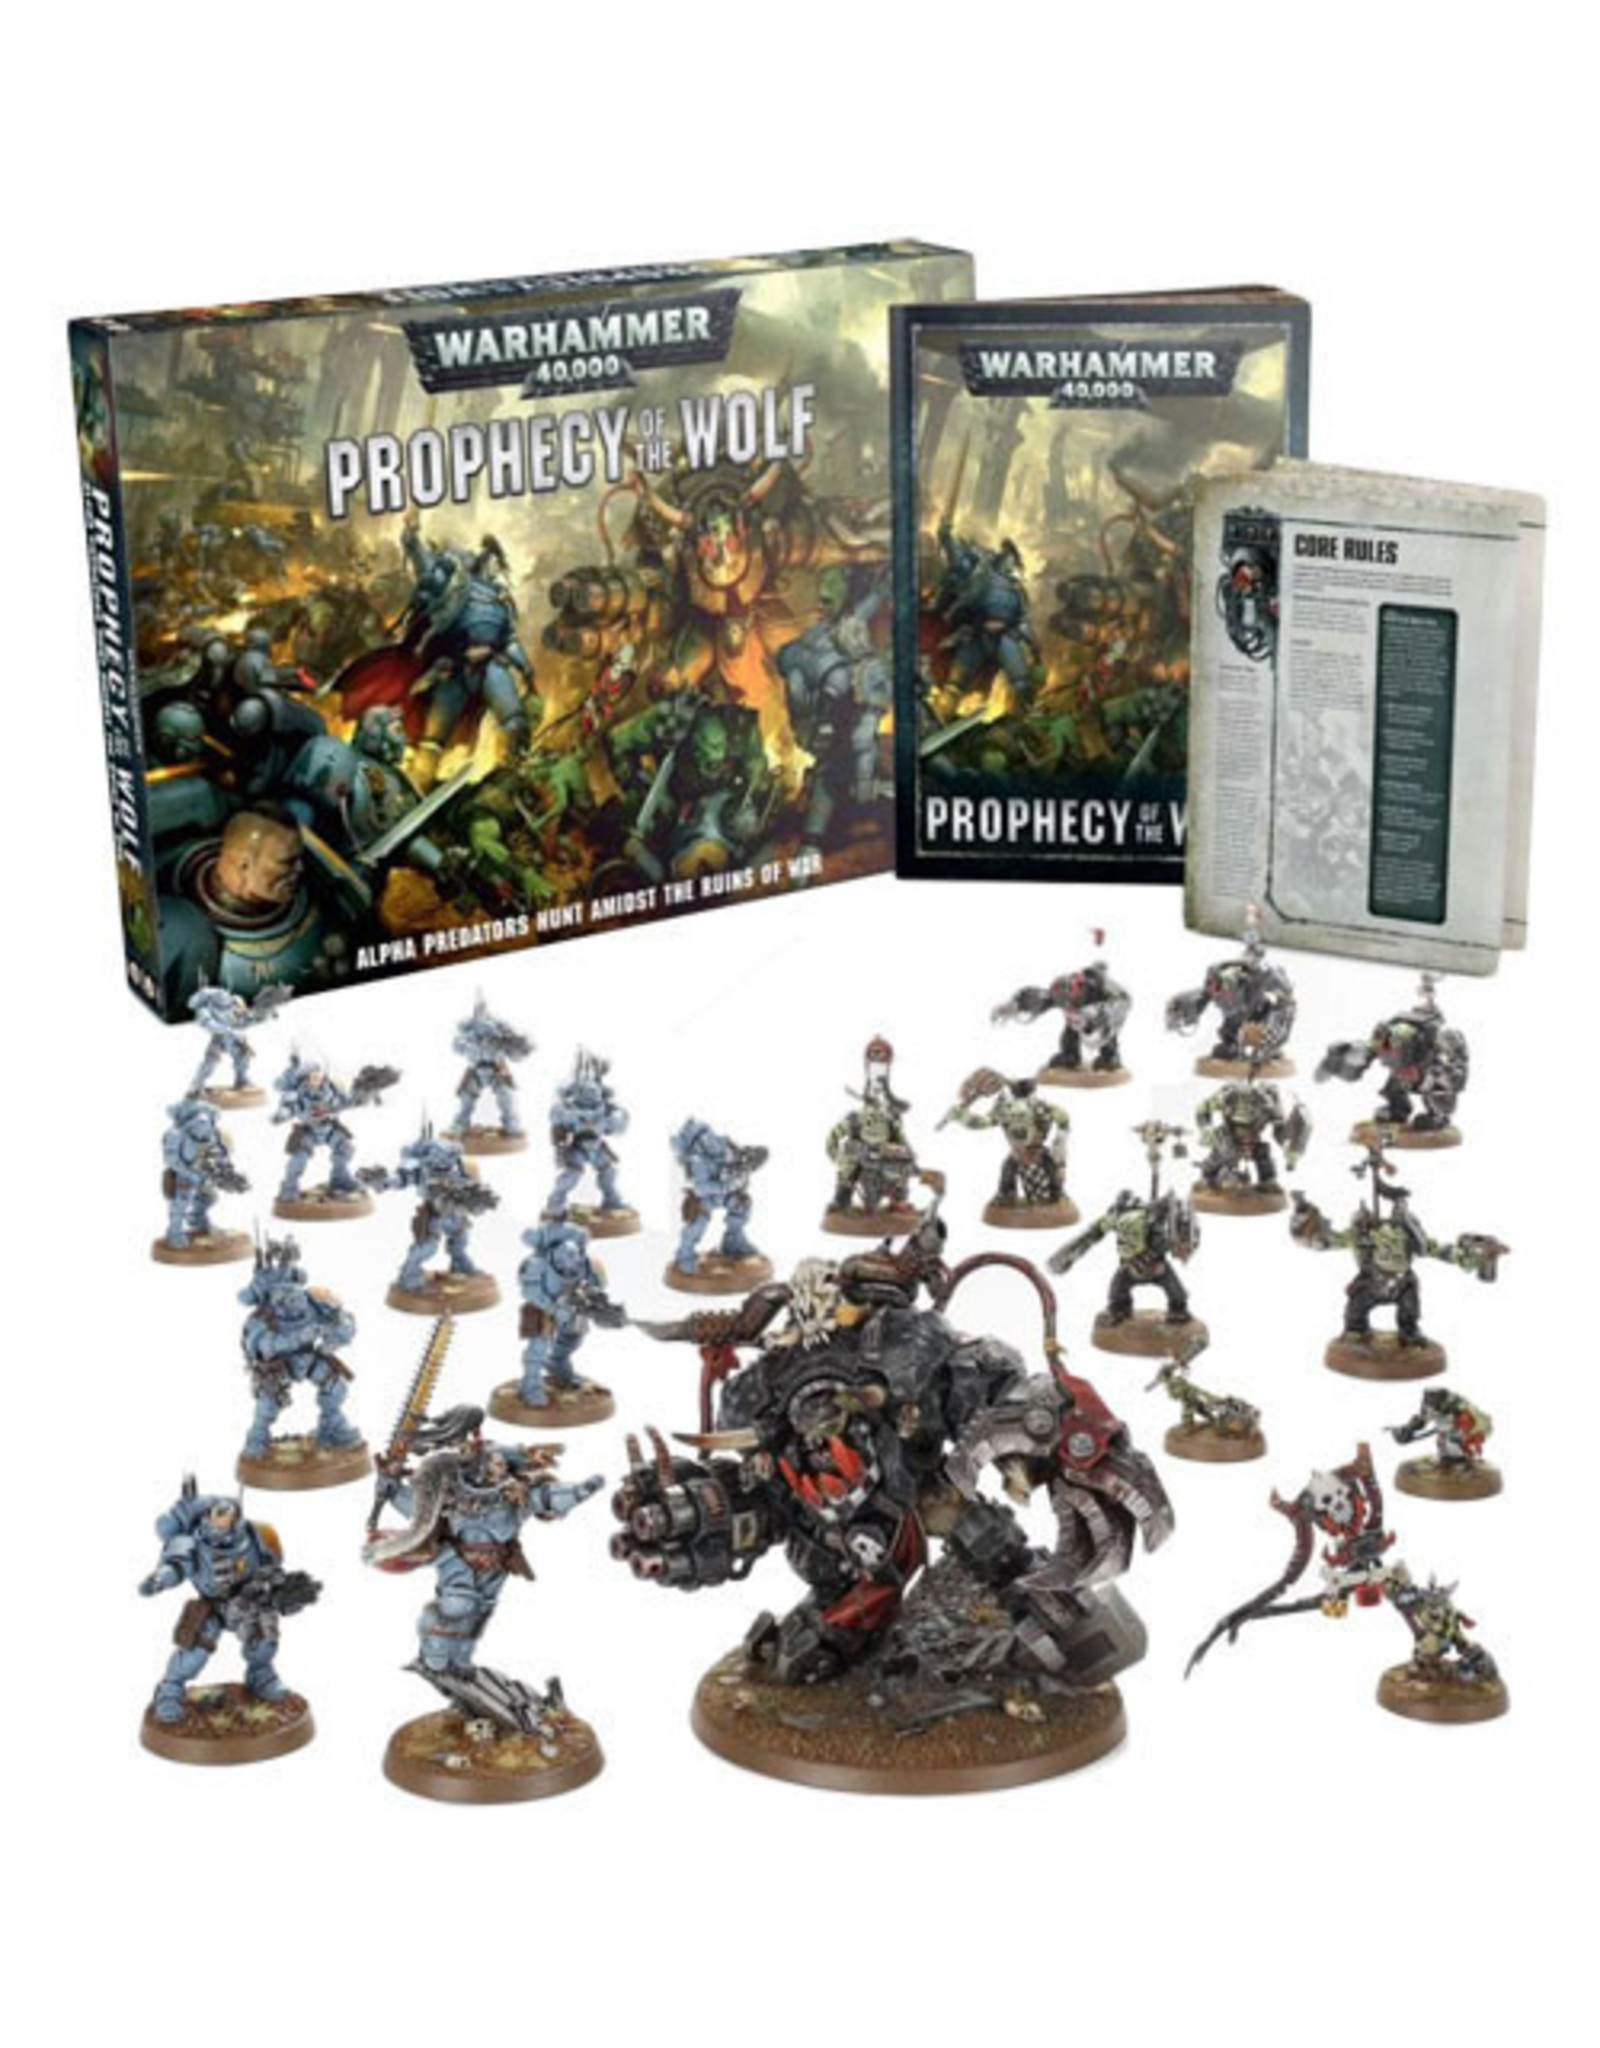 Warhammer 40K 40K: Prophecy of the Wolf